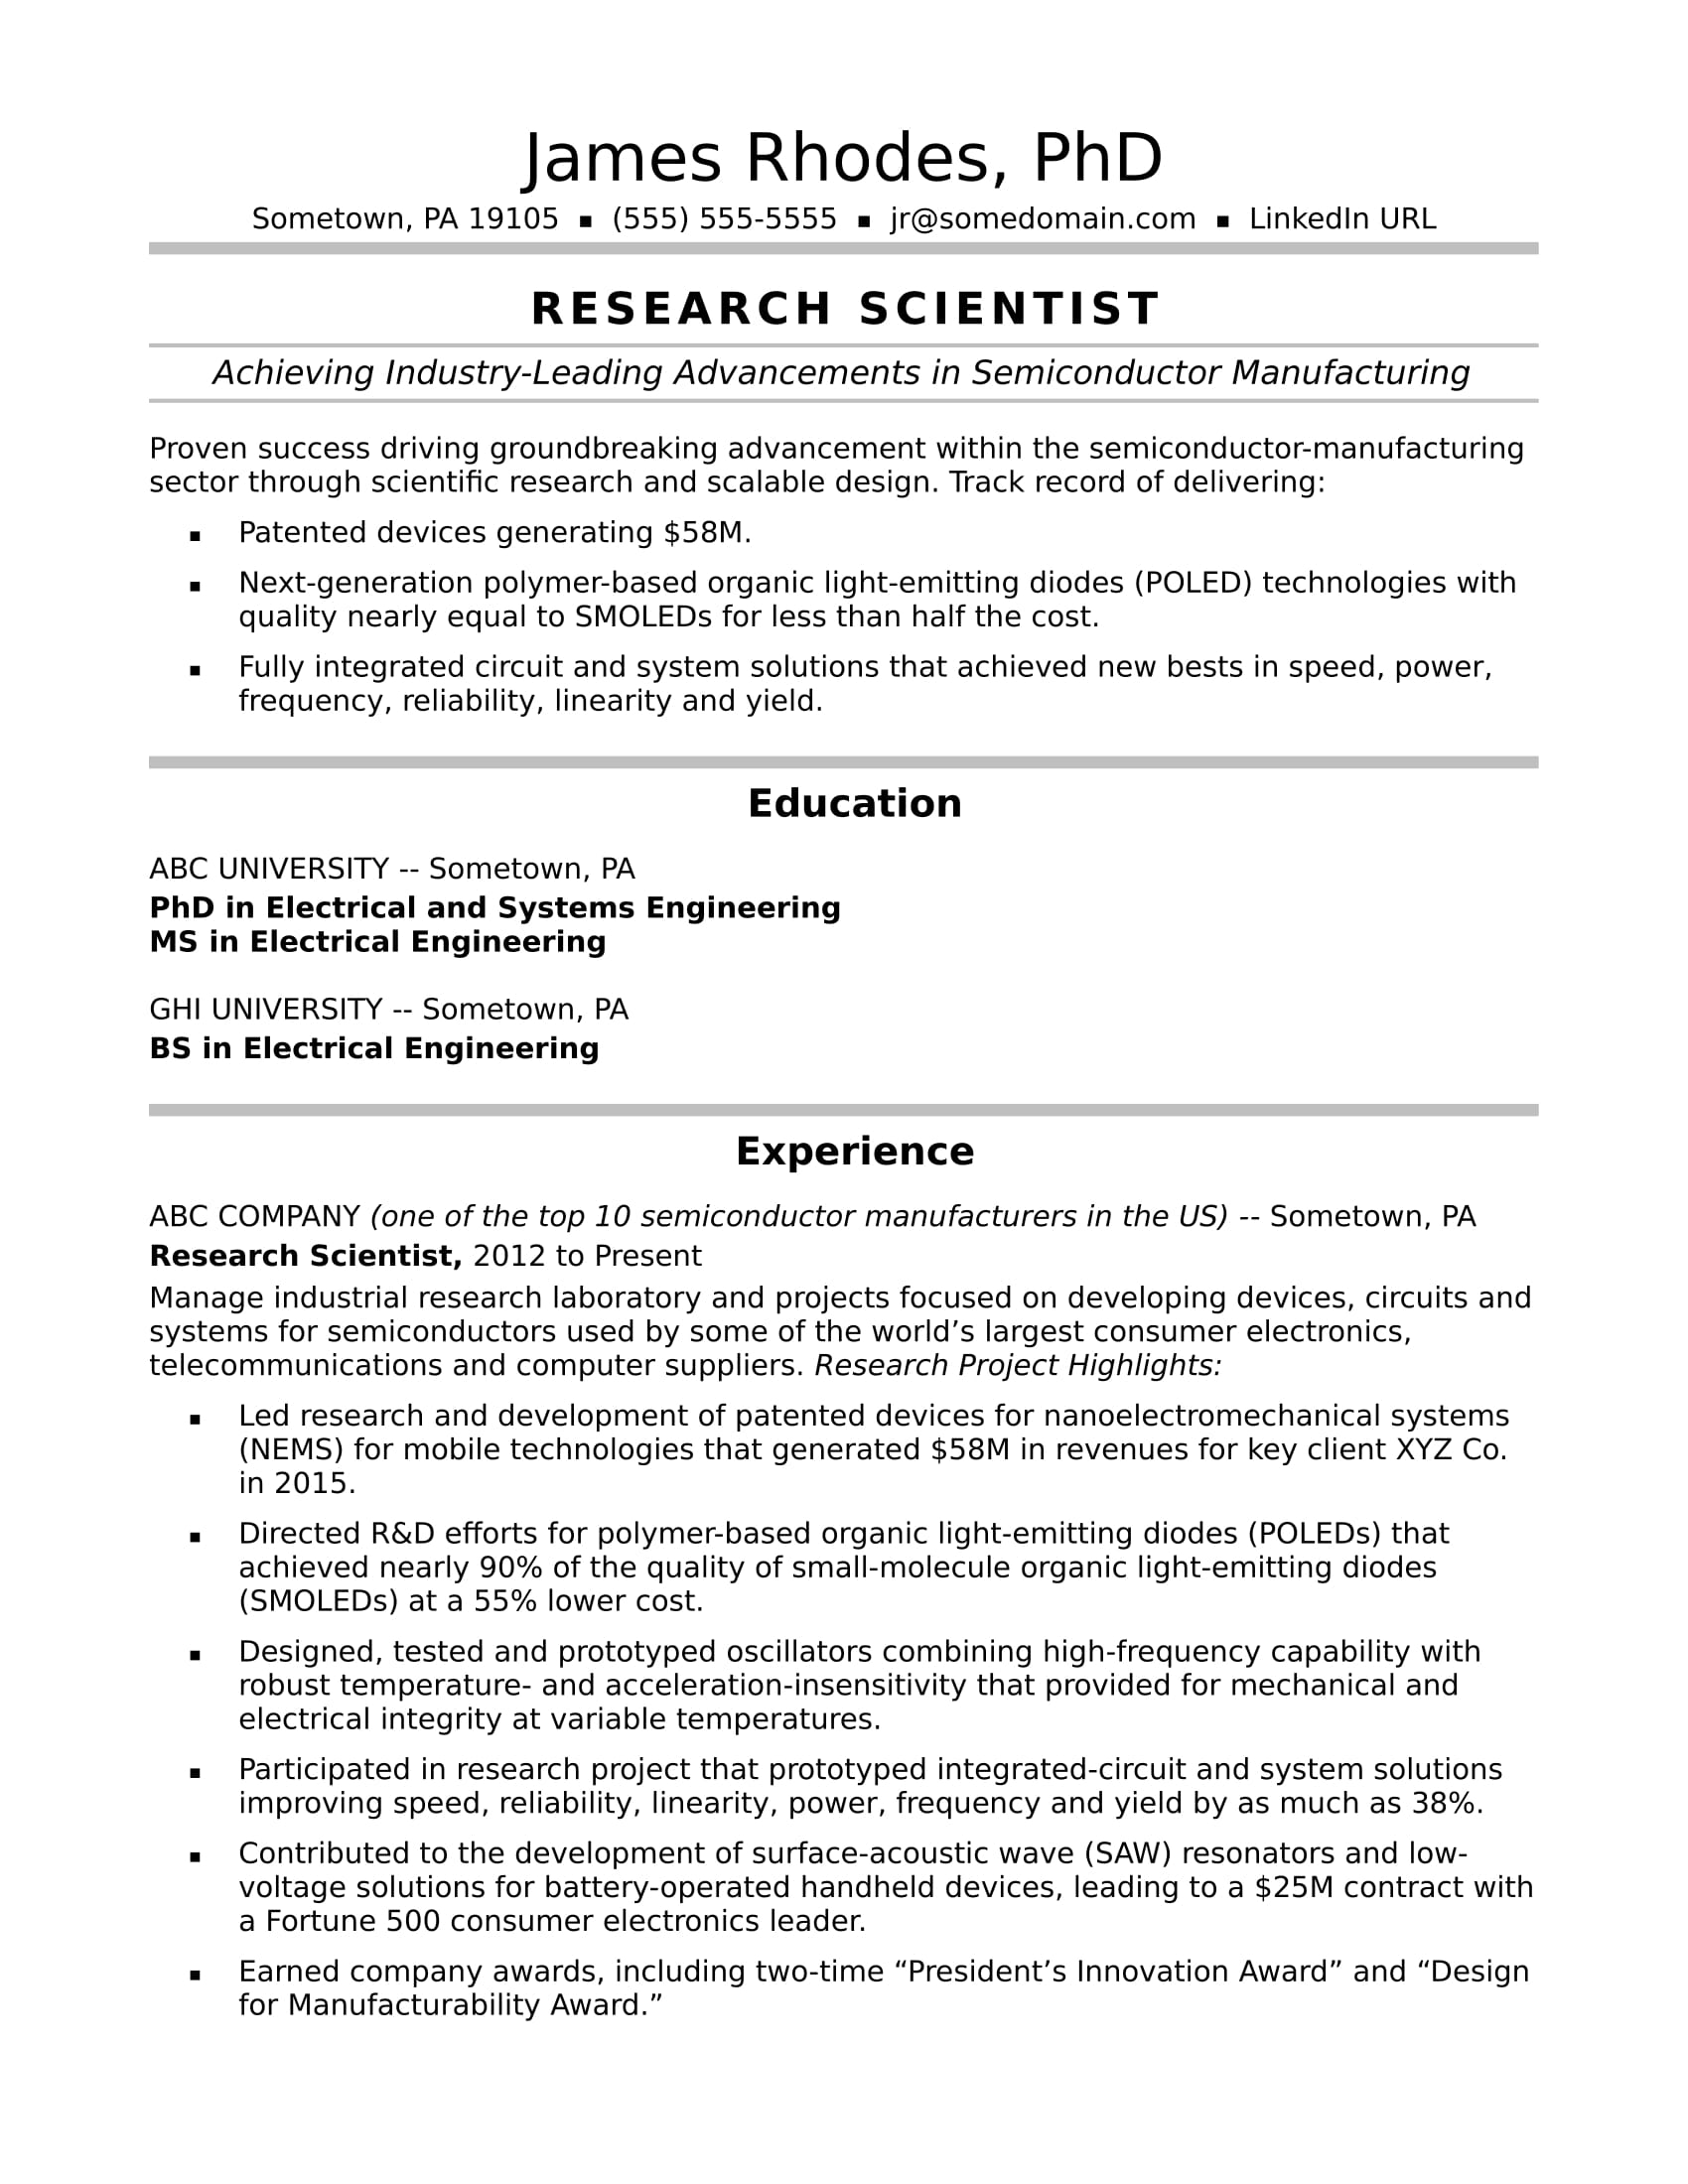 sample resume for a research scientist - Scientific Resume Examples